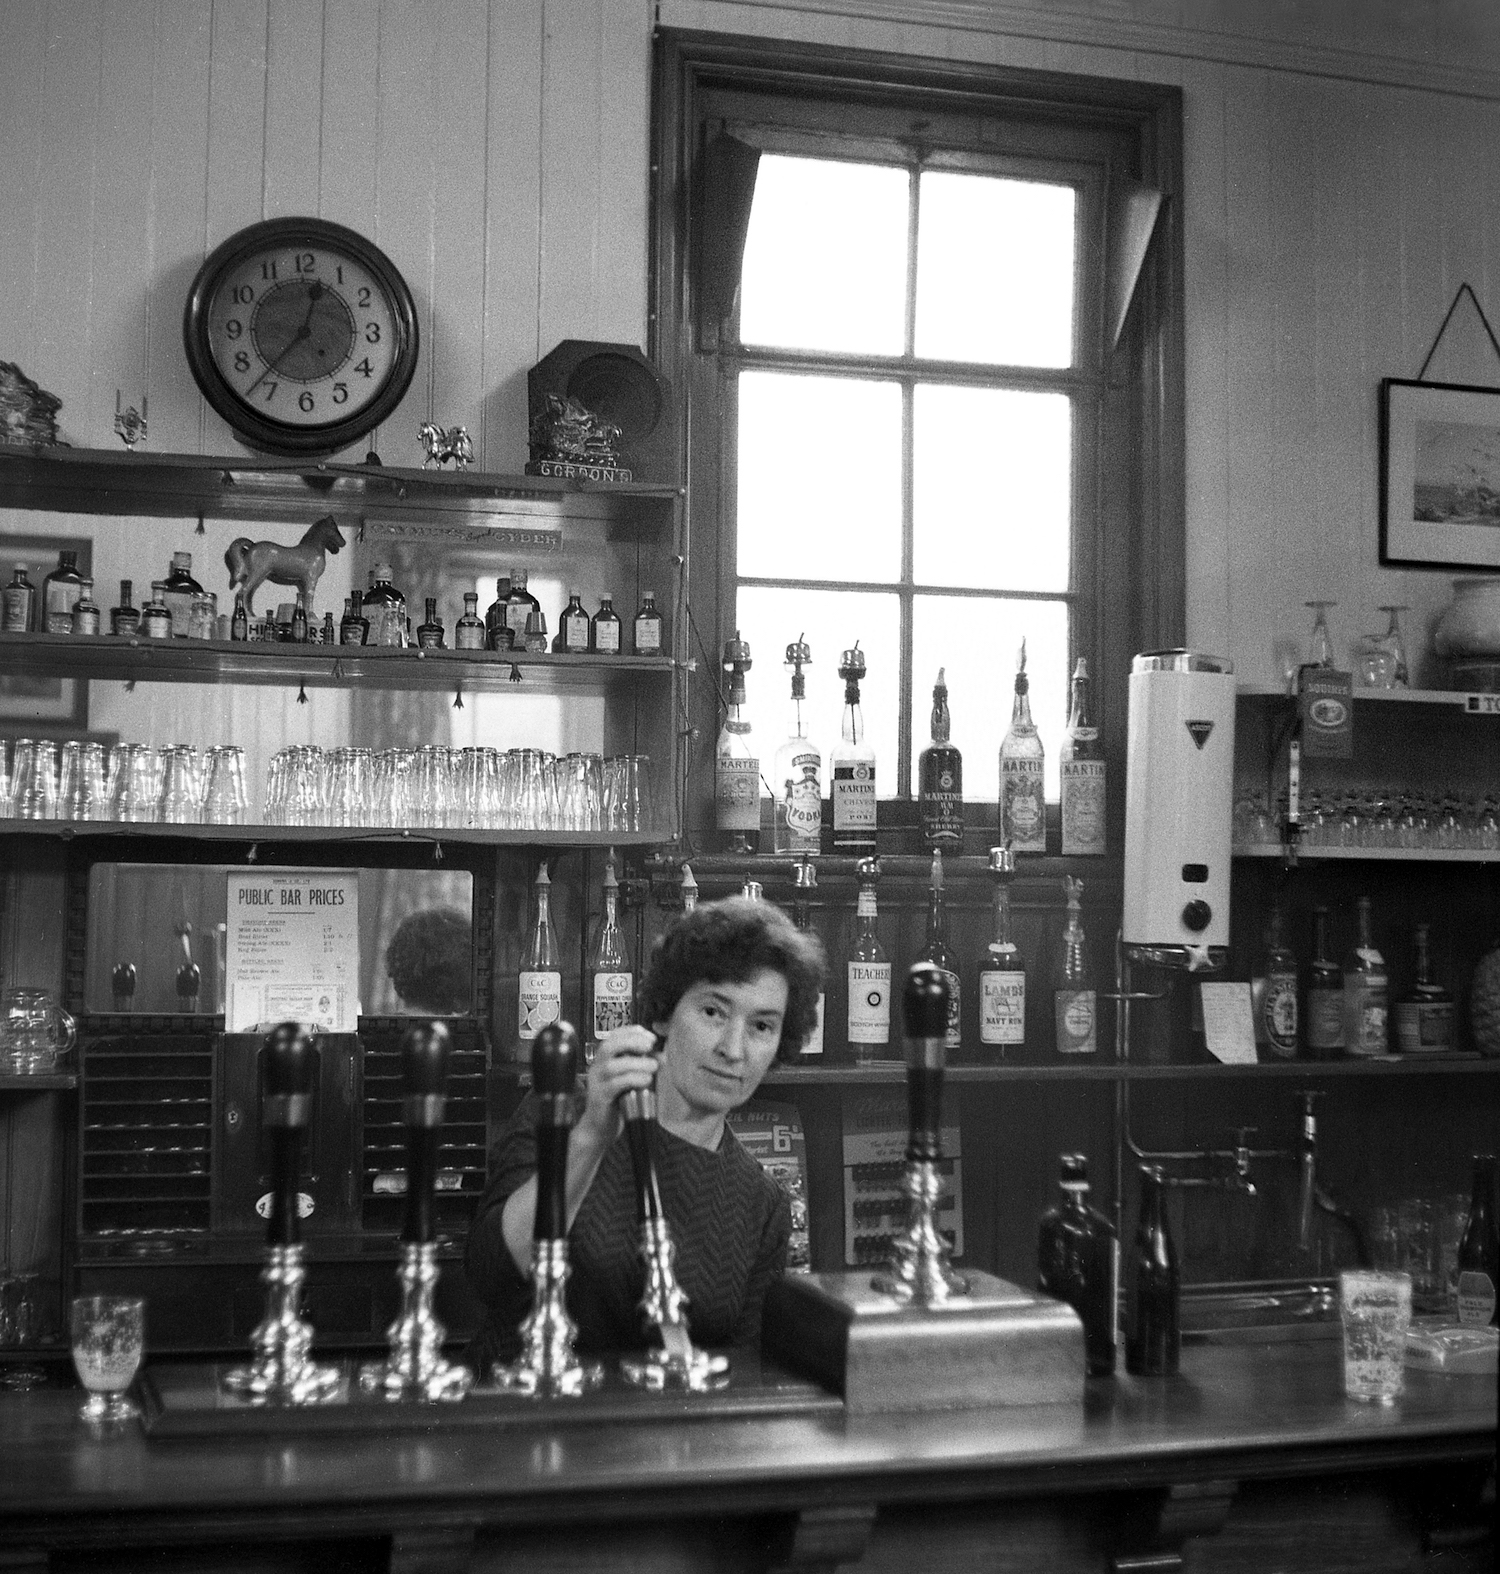 The Engineers Pub, Leiston, Suffolk 1966